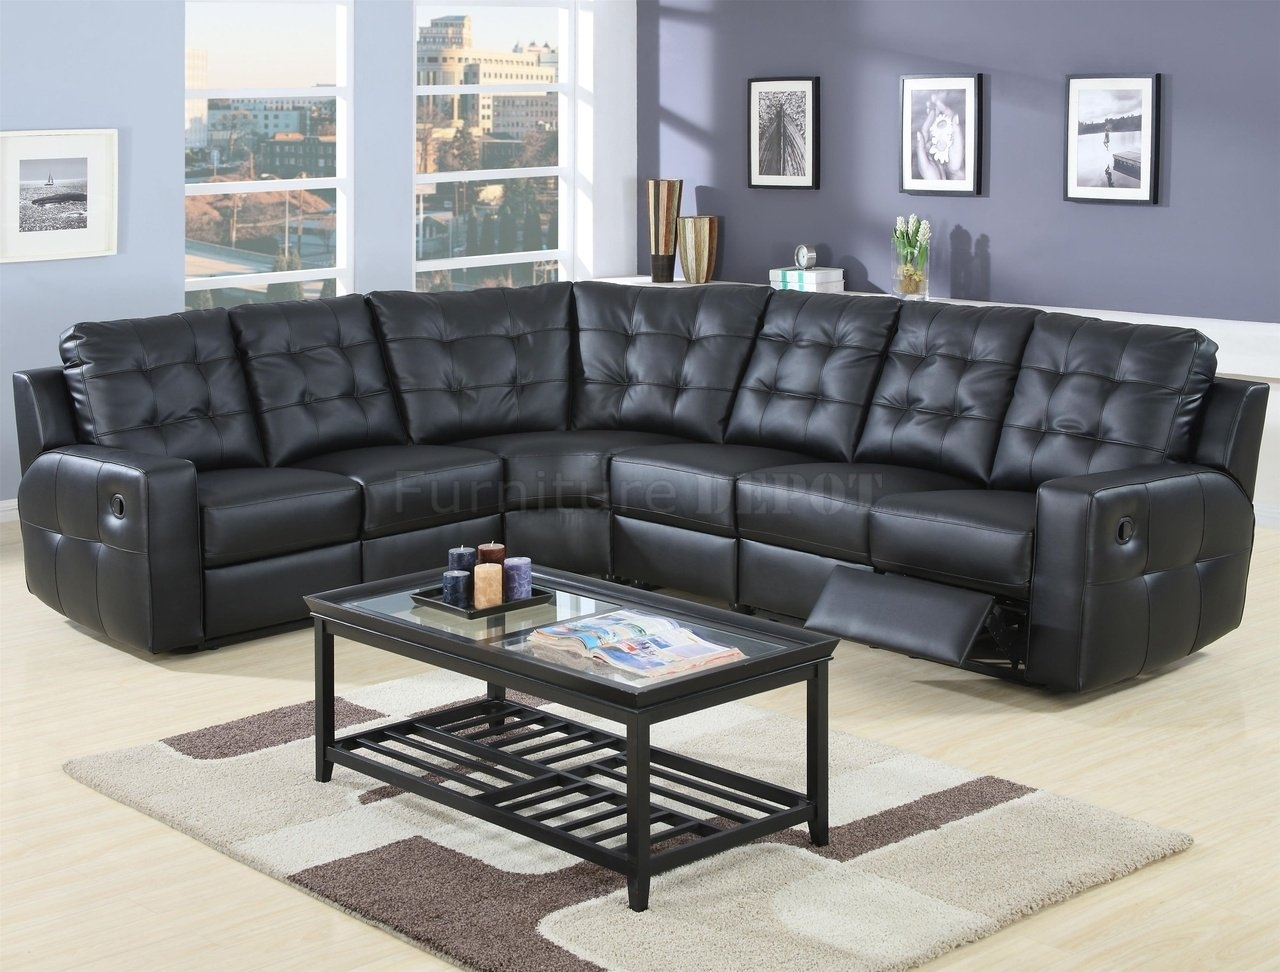 The Most Popular Sectional Sofas Austin Tx 80 On Leather Reclining inside Austin Sectional Sofas (Image 10 of 10)